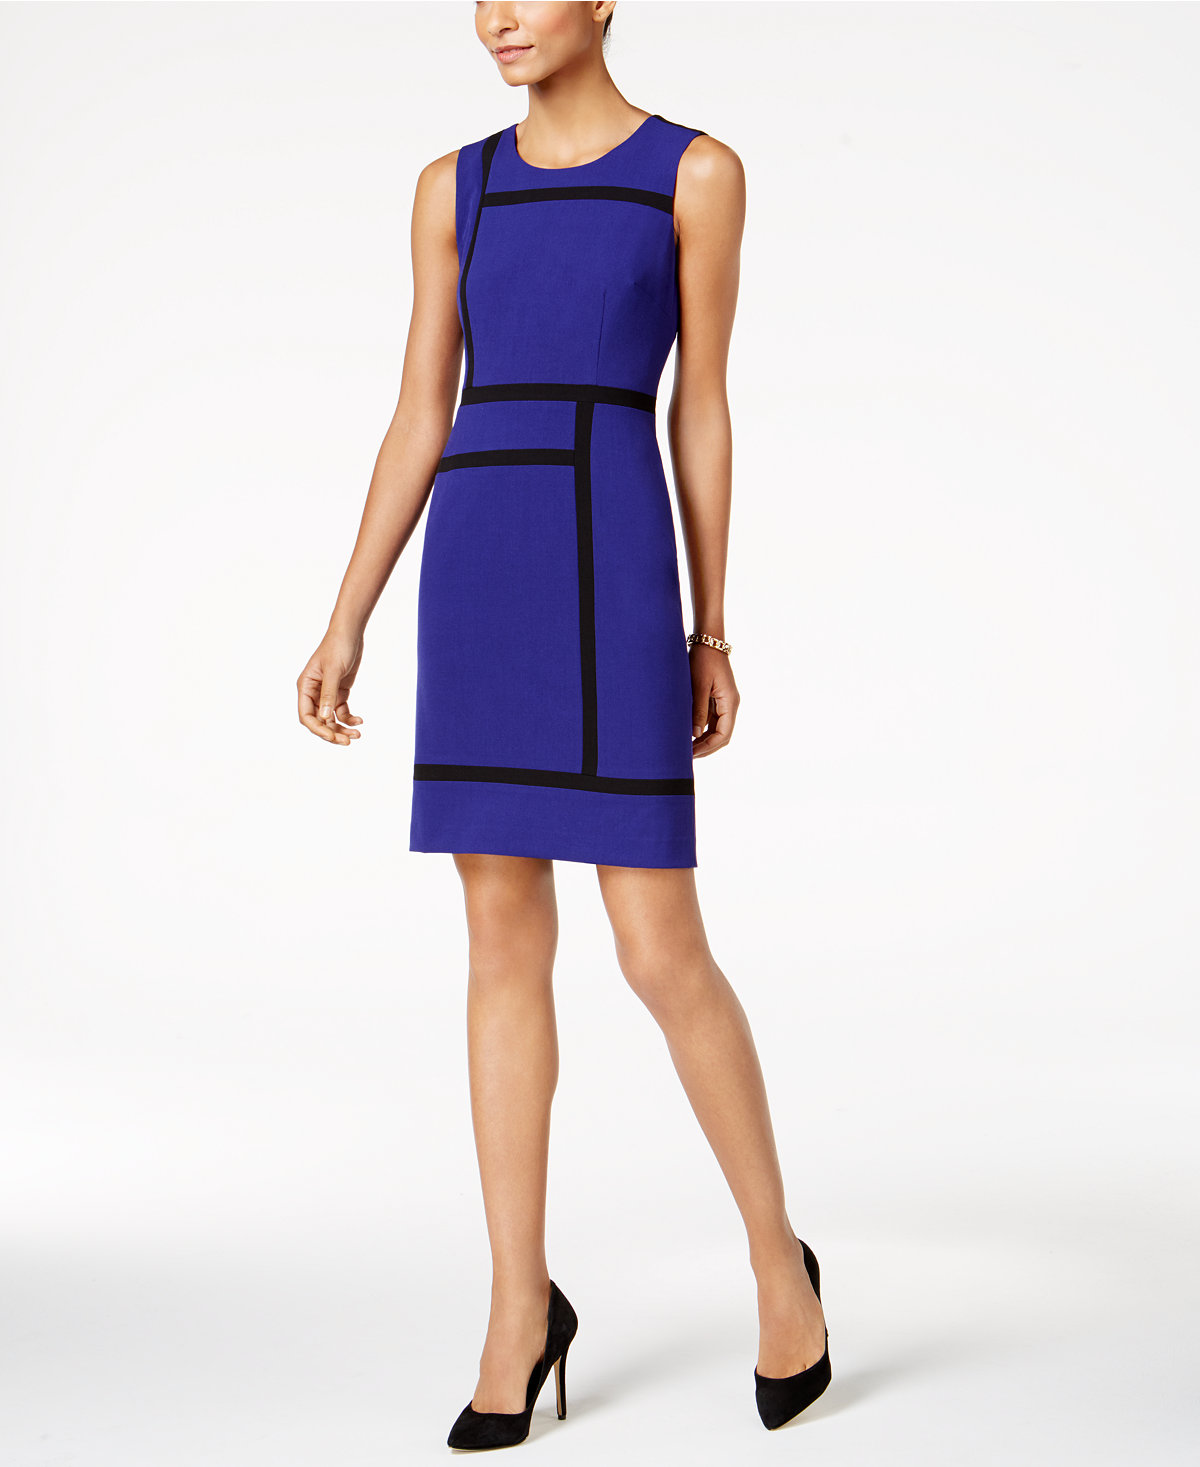 dress to impress with macys last act work attire special now